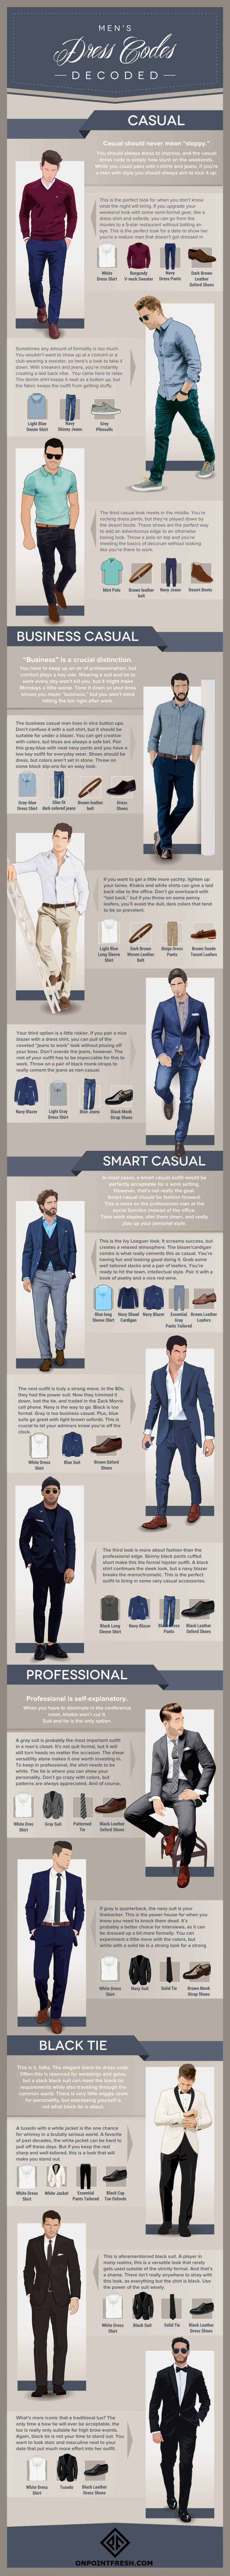 What does 'Casual' even mean? Men's Dress Codes, Decoded